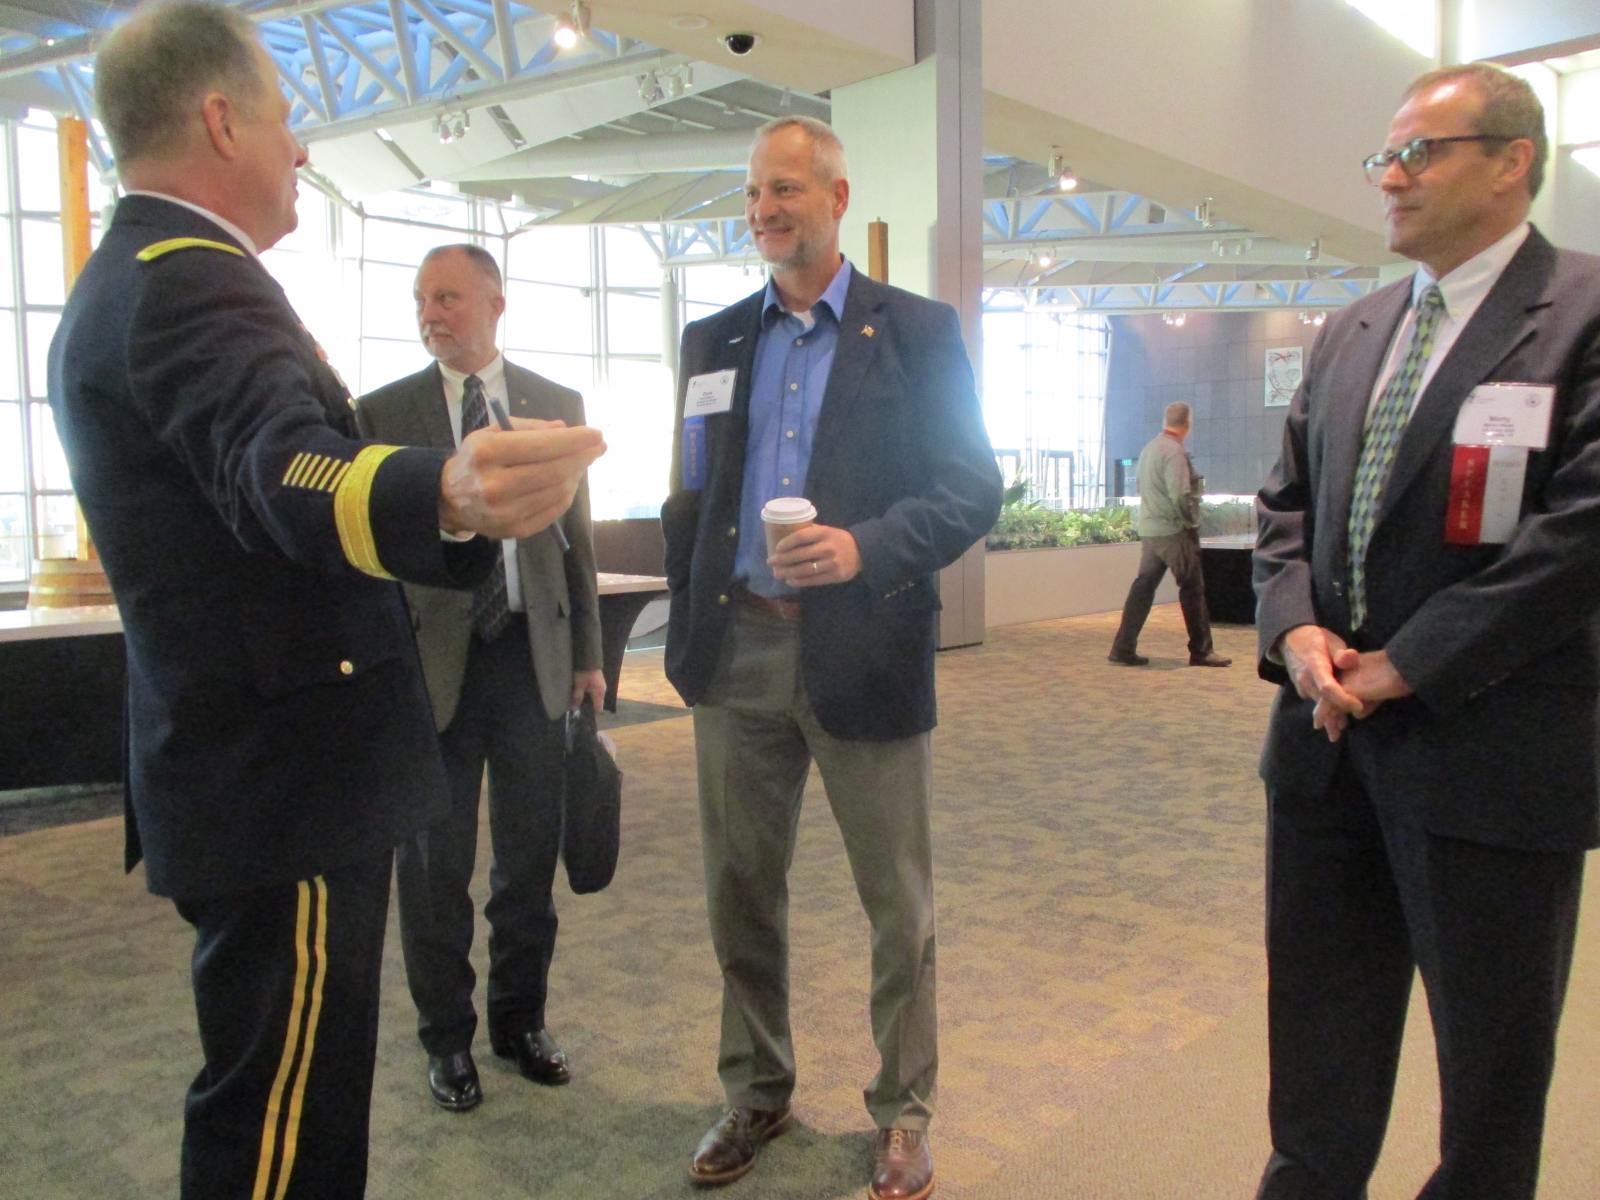 From left - Marty Walsh (ADD-Fort Eustis), David Meyer (Boeing) and Dan Toy (Rockwell Collins) greet our keynote speaker.